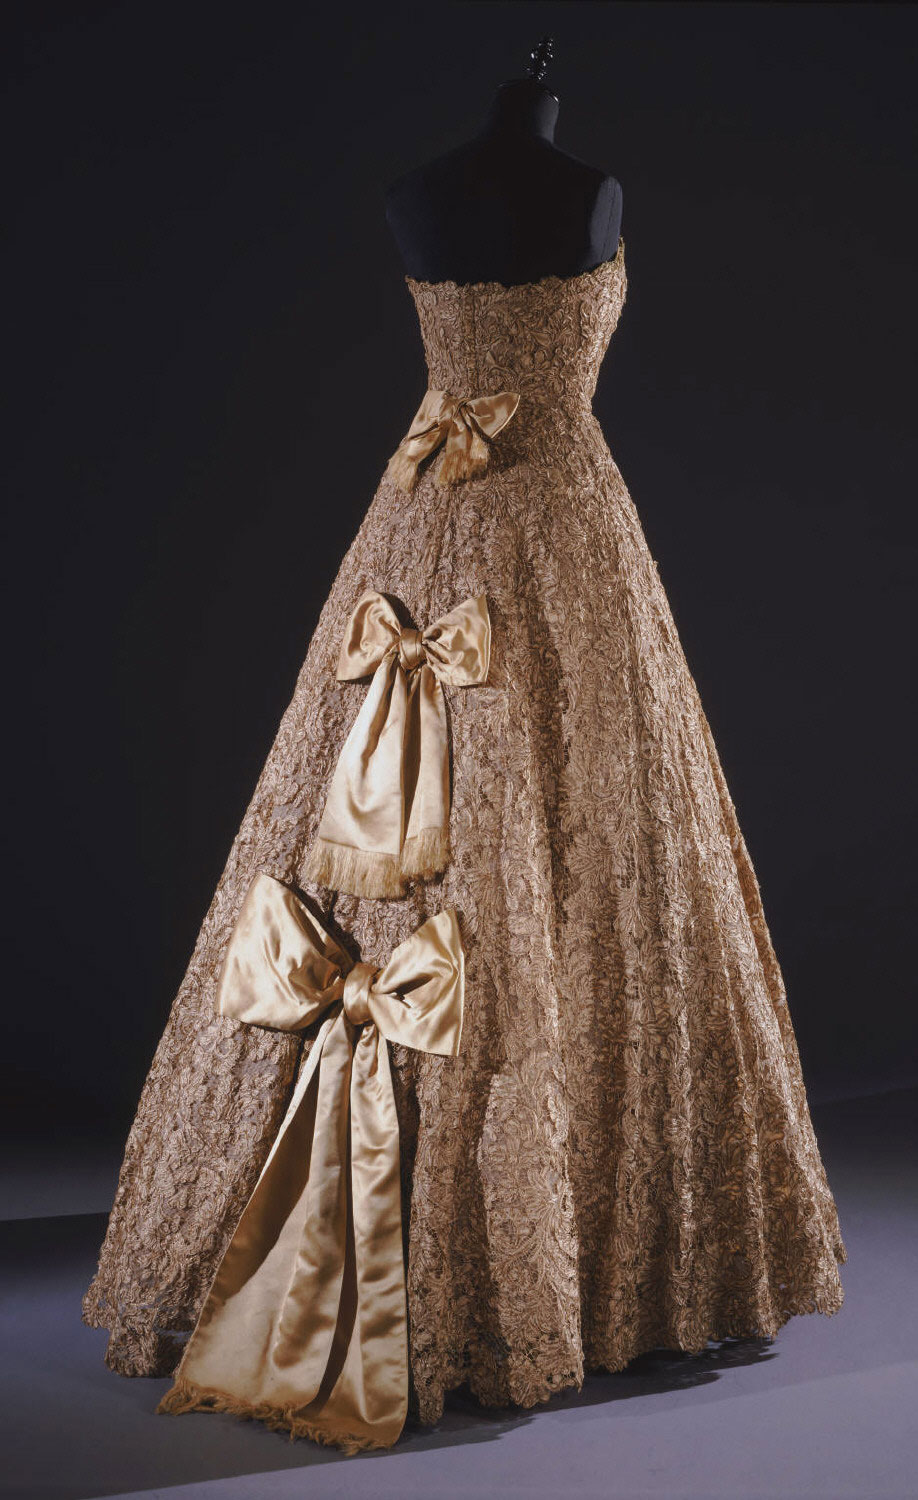 Woman's Ball Gown and Petticoat